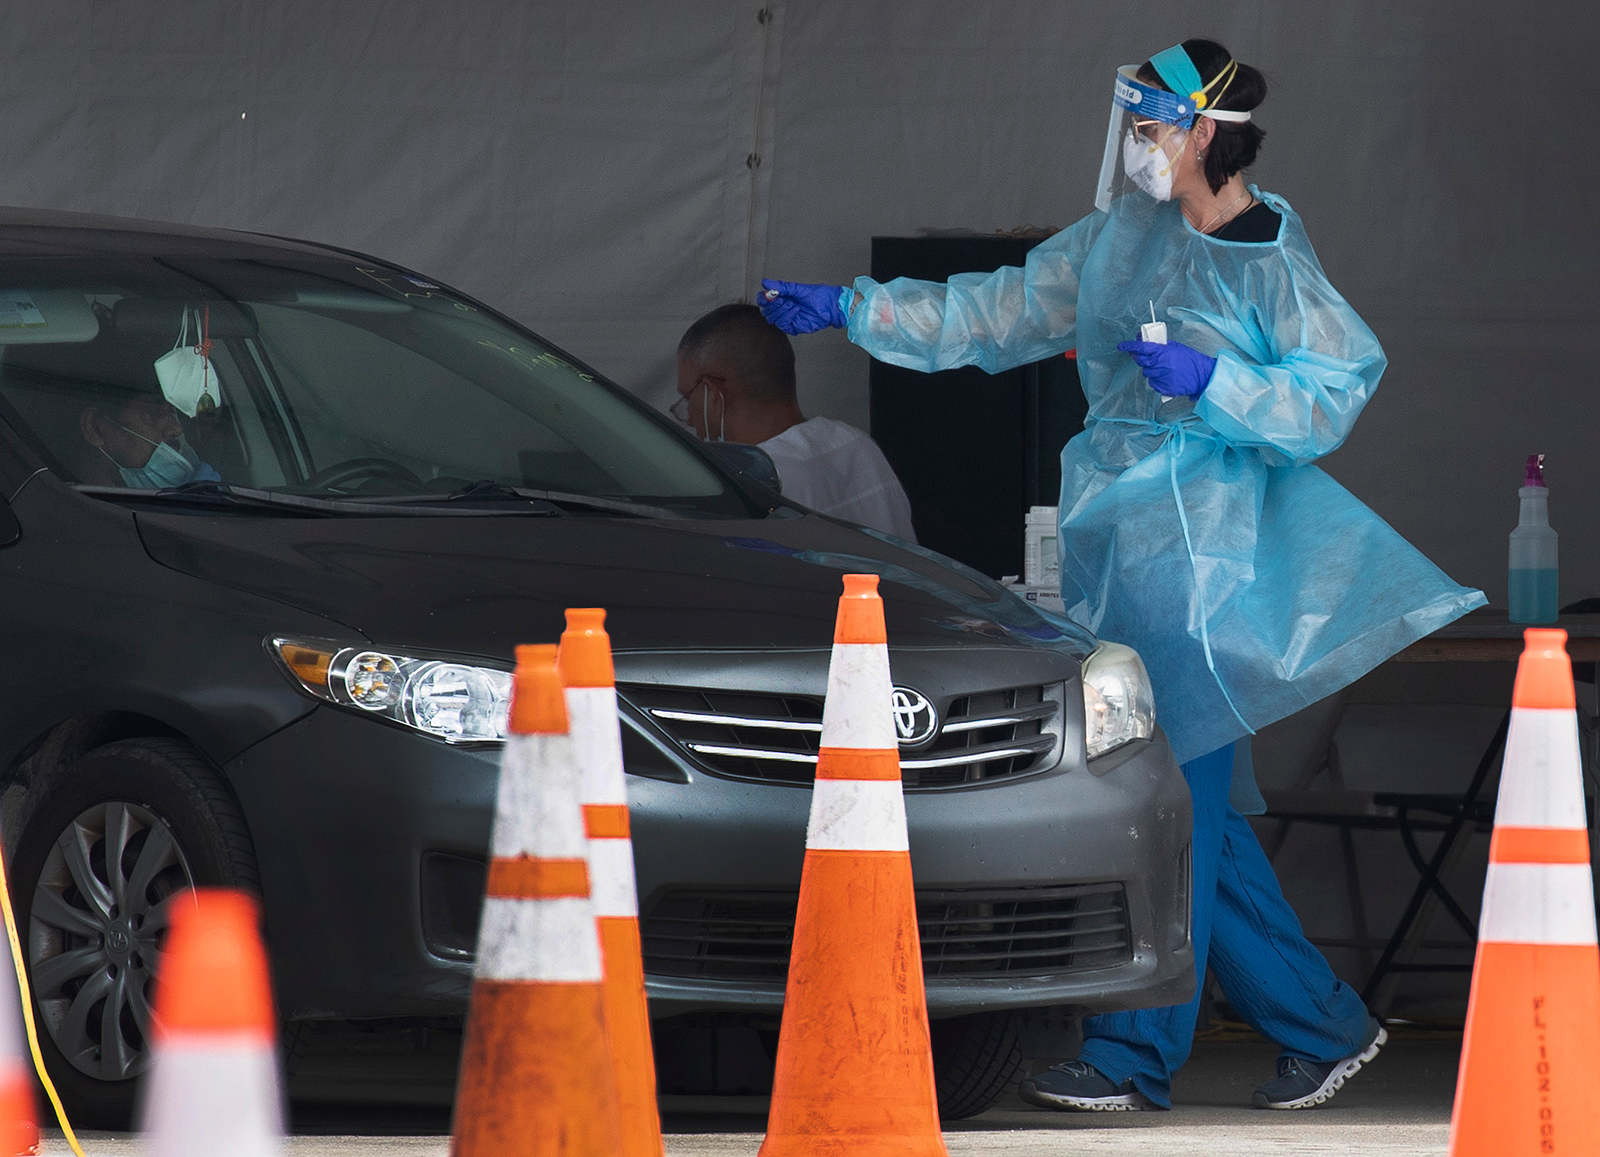 A healthcare worker tests a person for Covid-19 at the test site located in the Hard Rock Stadium parking lot on July 13, in Miami Gardens, Florida.